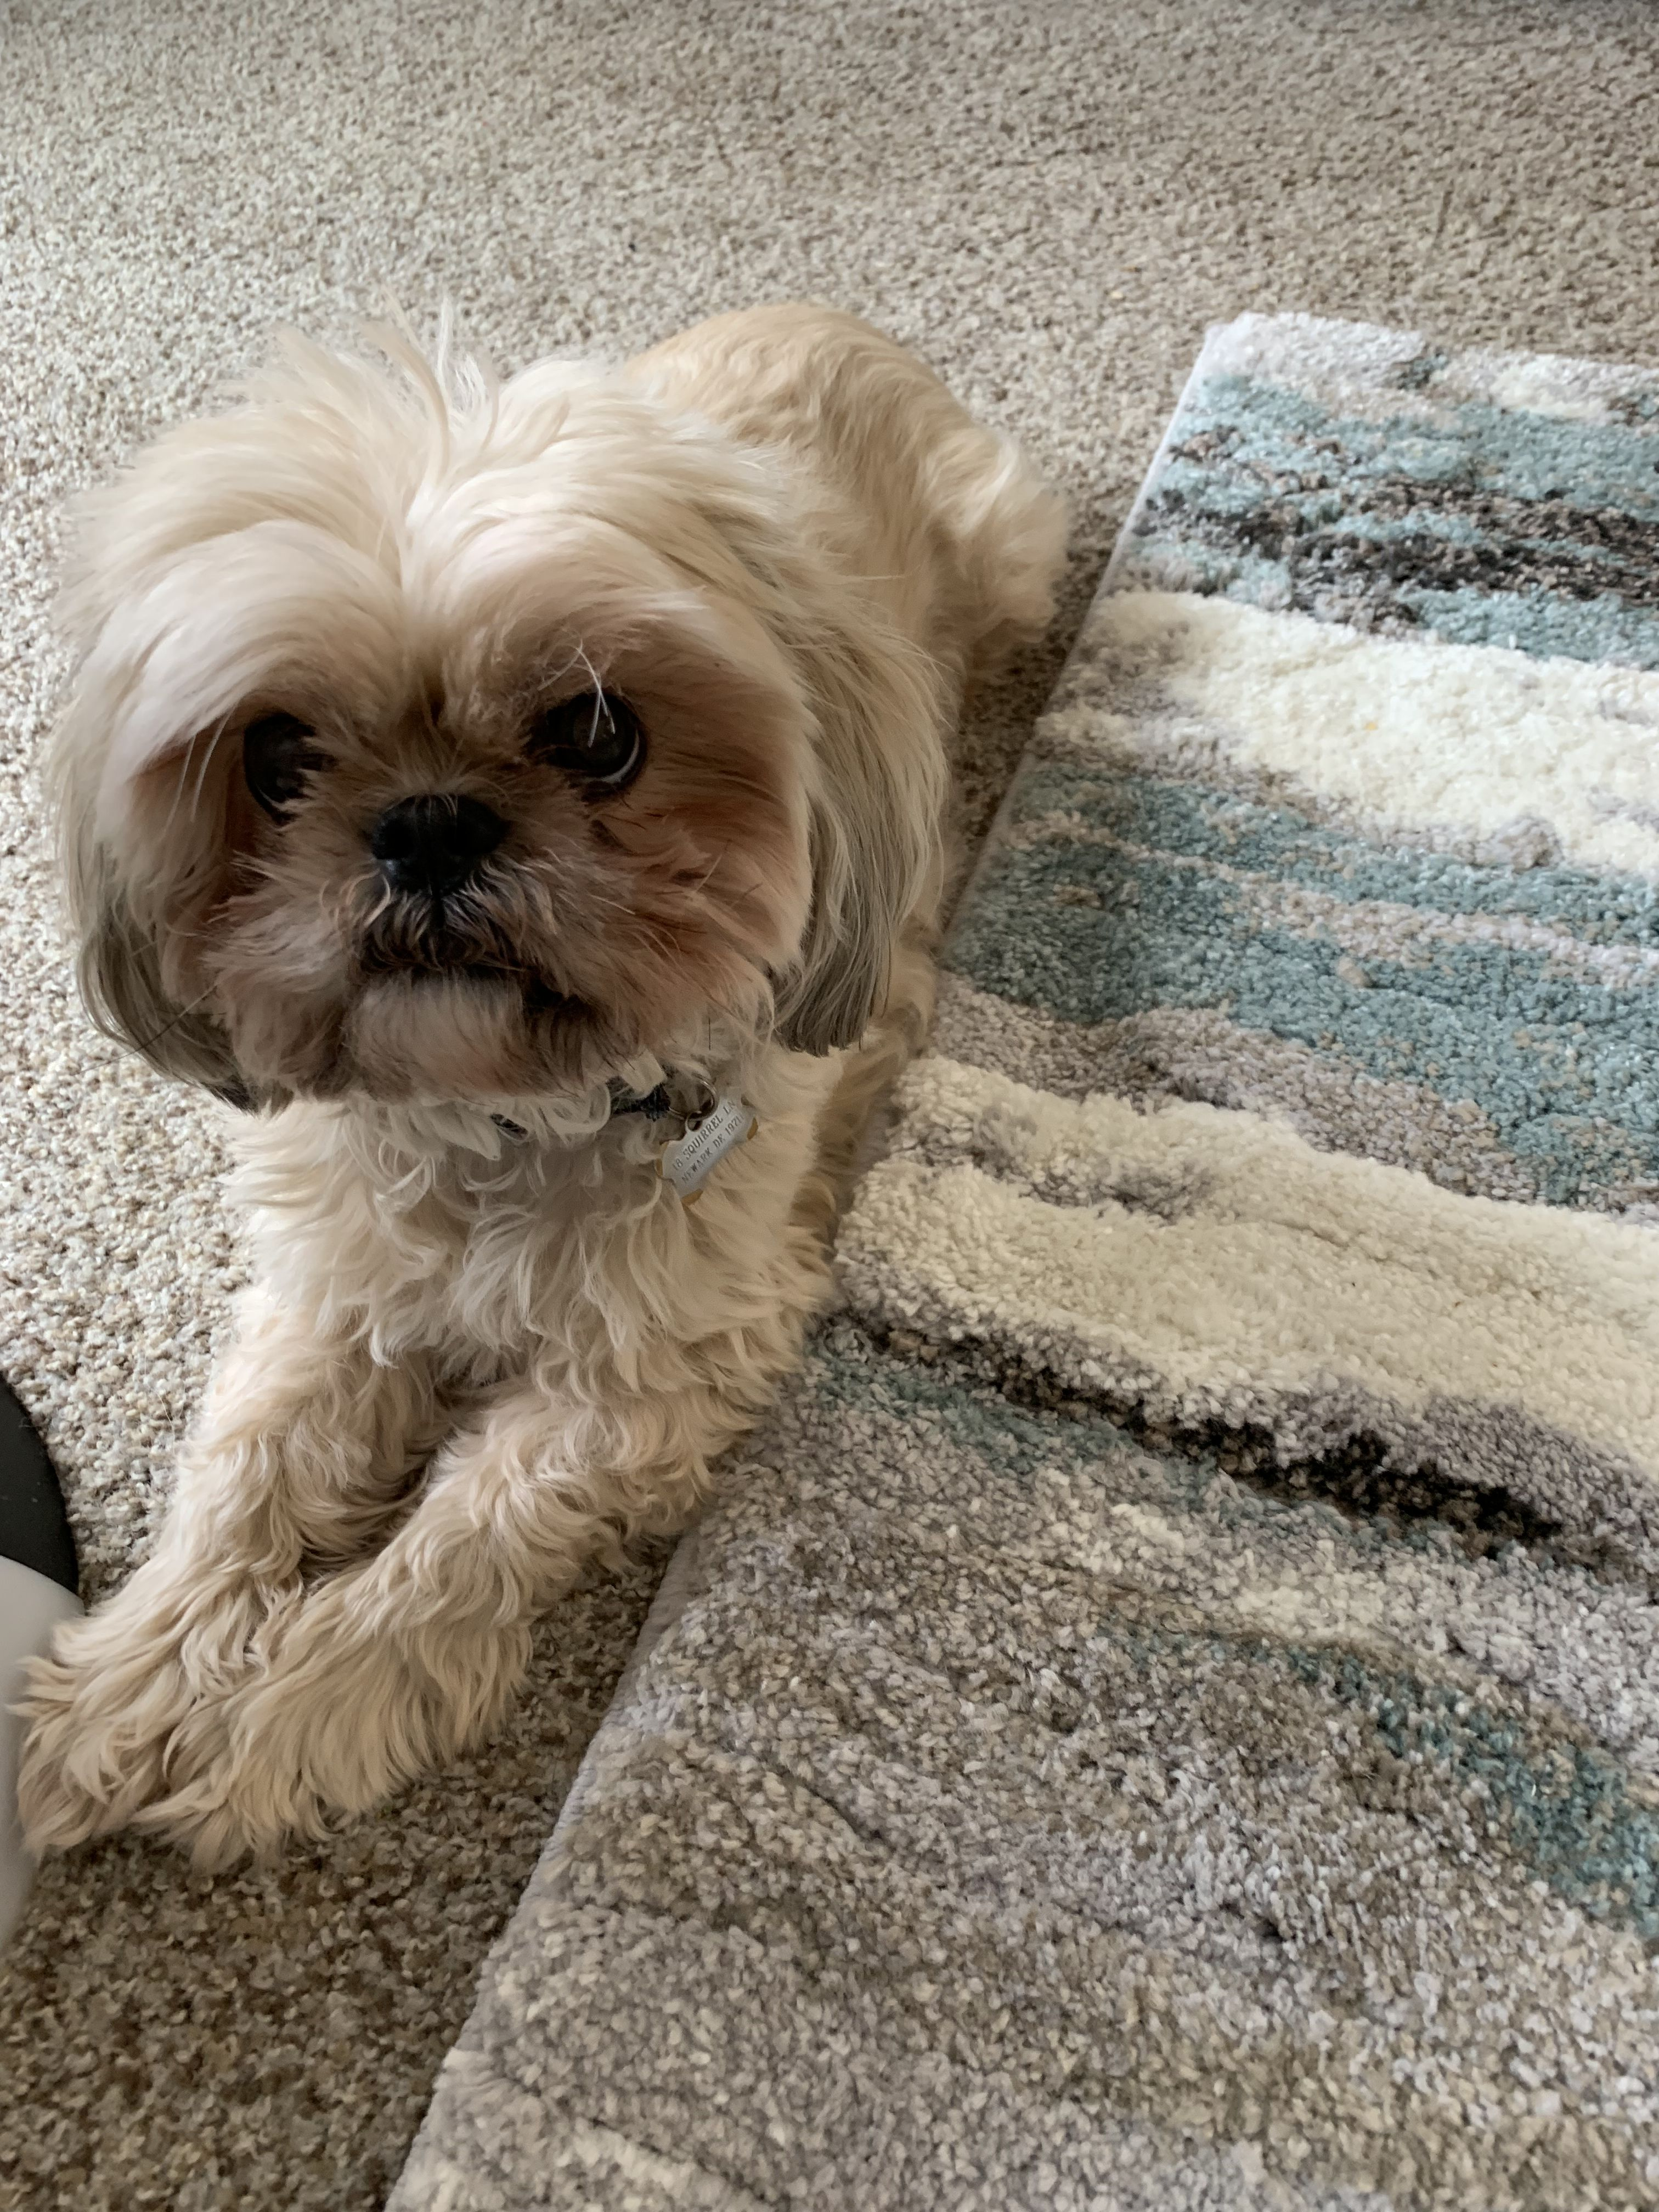 Pin By Willow D On Our Shih Tzu Dogs So Adorable Shih Tzu Dog